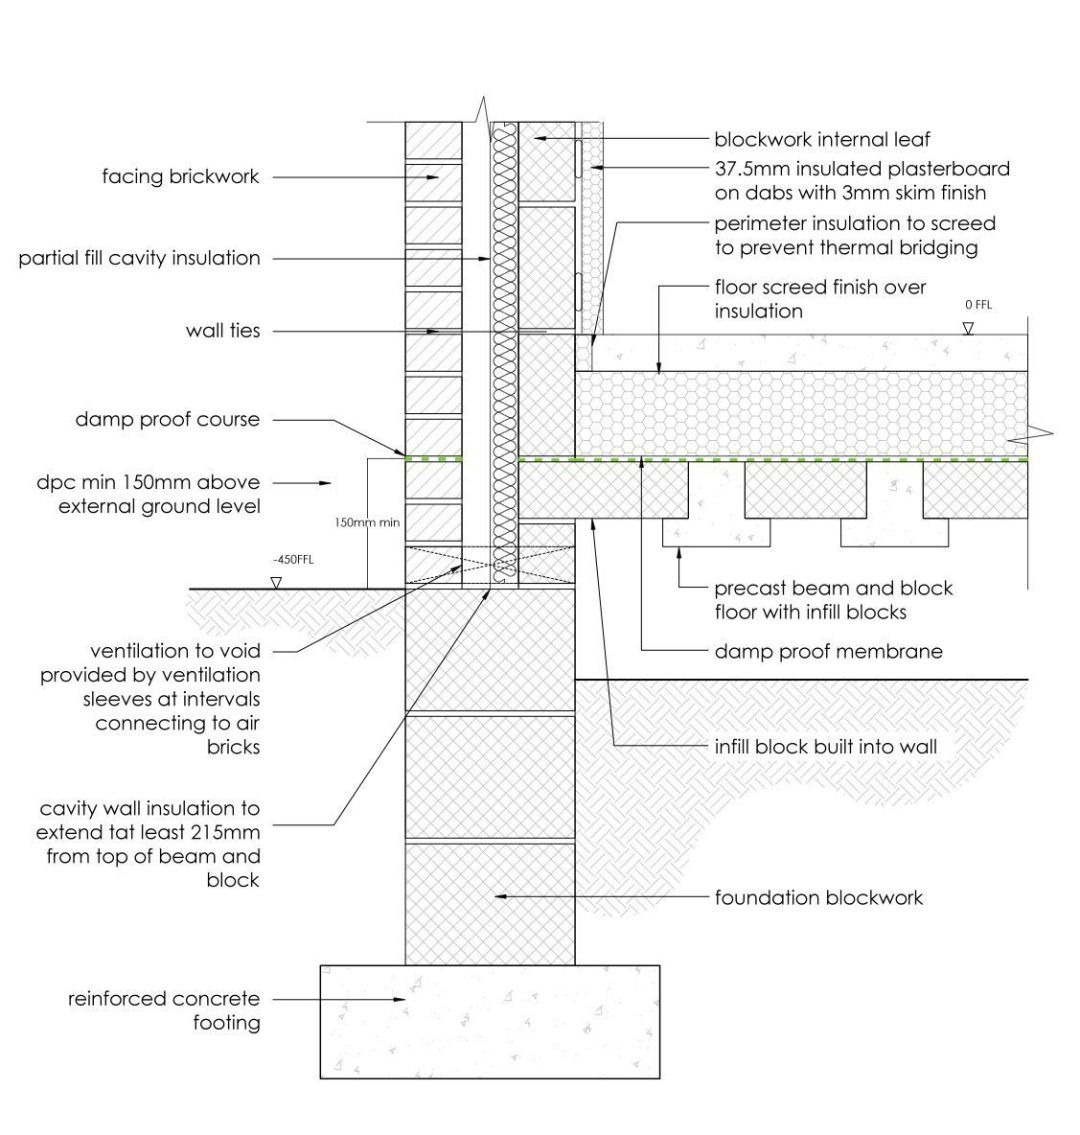 Introduction To Beam And Block Floors Construction Detailing And Selection In 2020 Beams Framing Construction Flooring